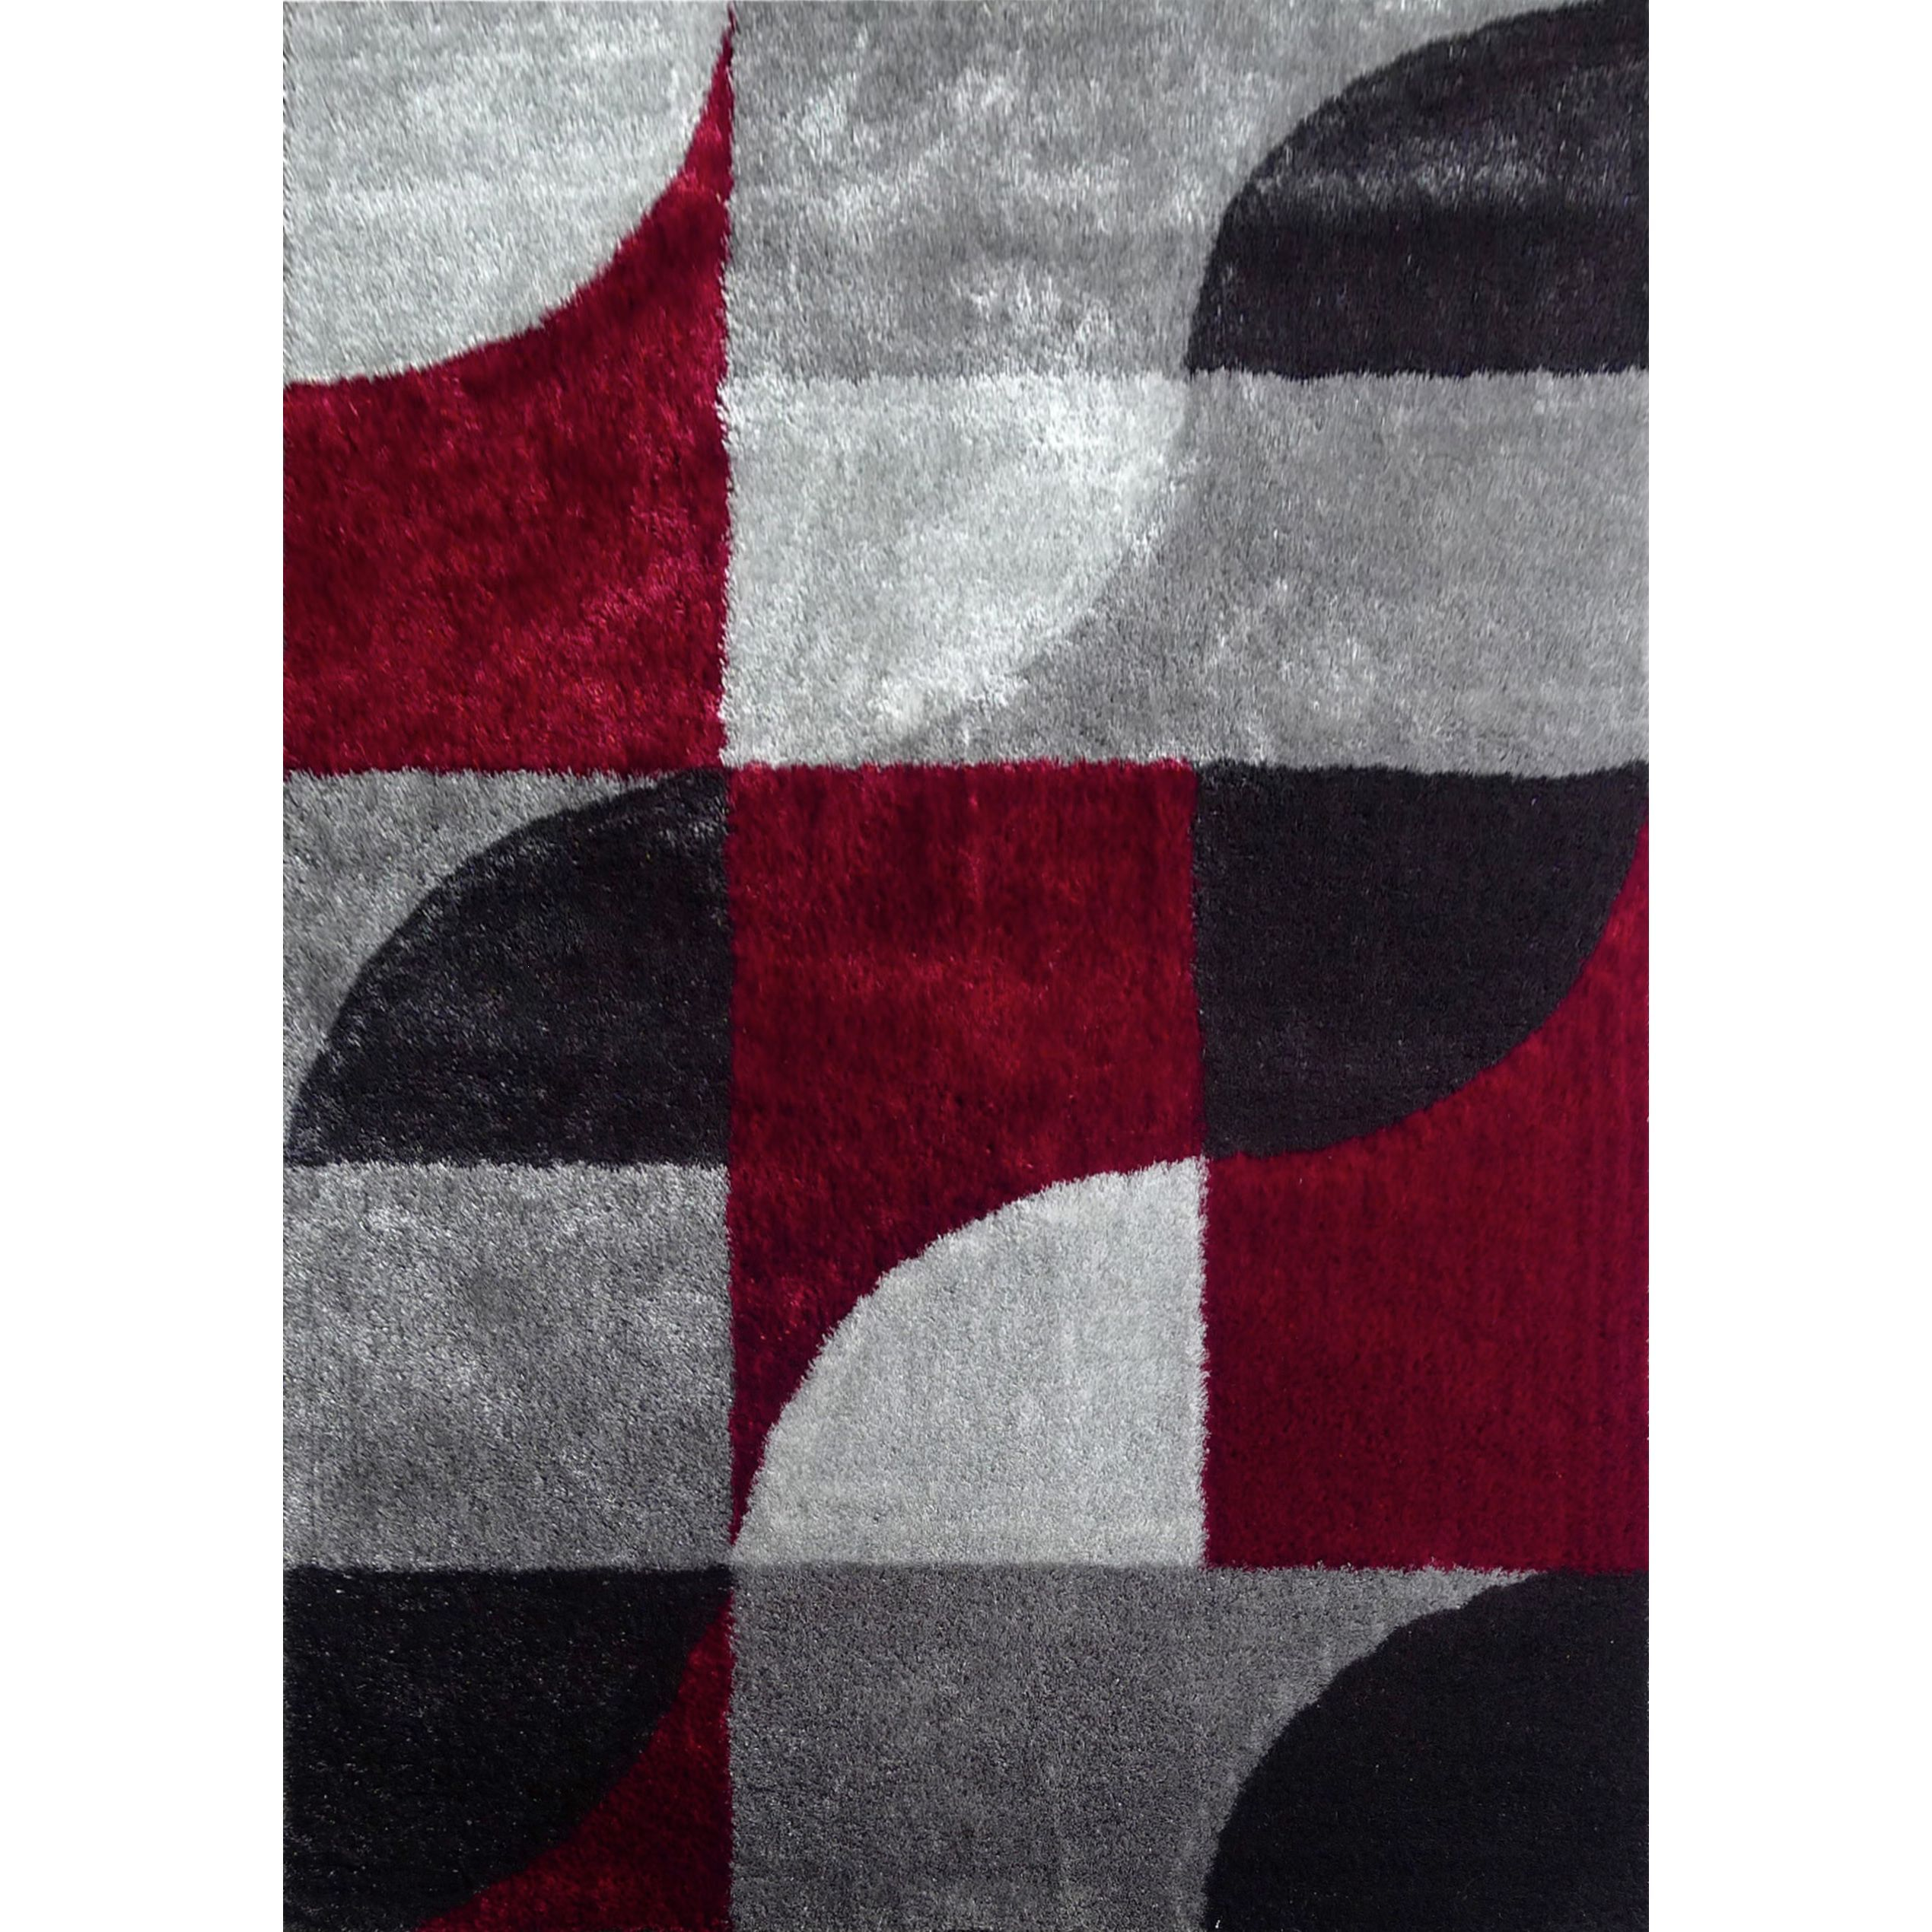 This Stunning Area Rug Is Easy To Clean And Vacuum While Adding Style Any Room The Hand Tufted Polyester Designed In Red White Black Geometric